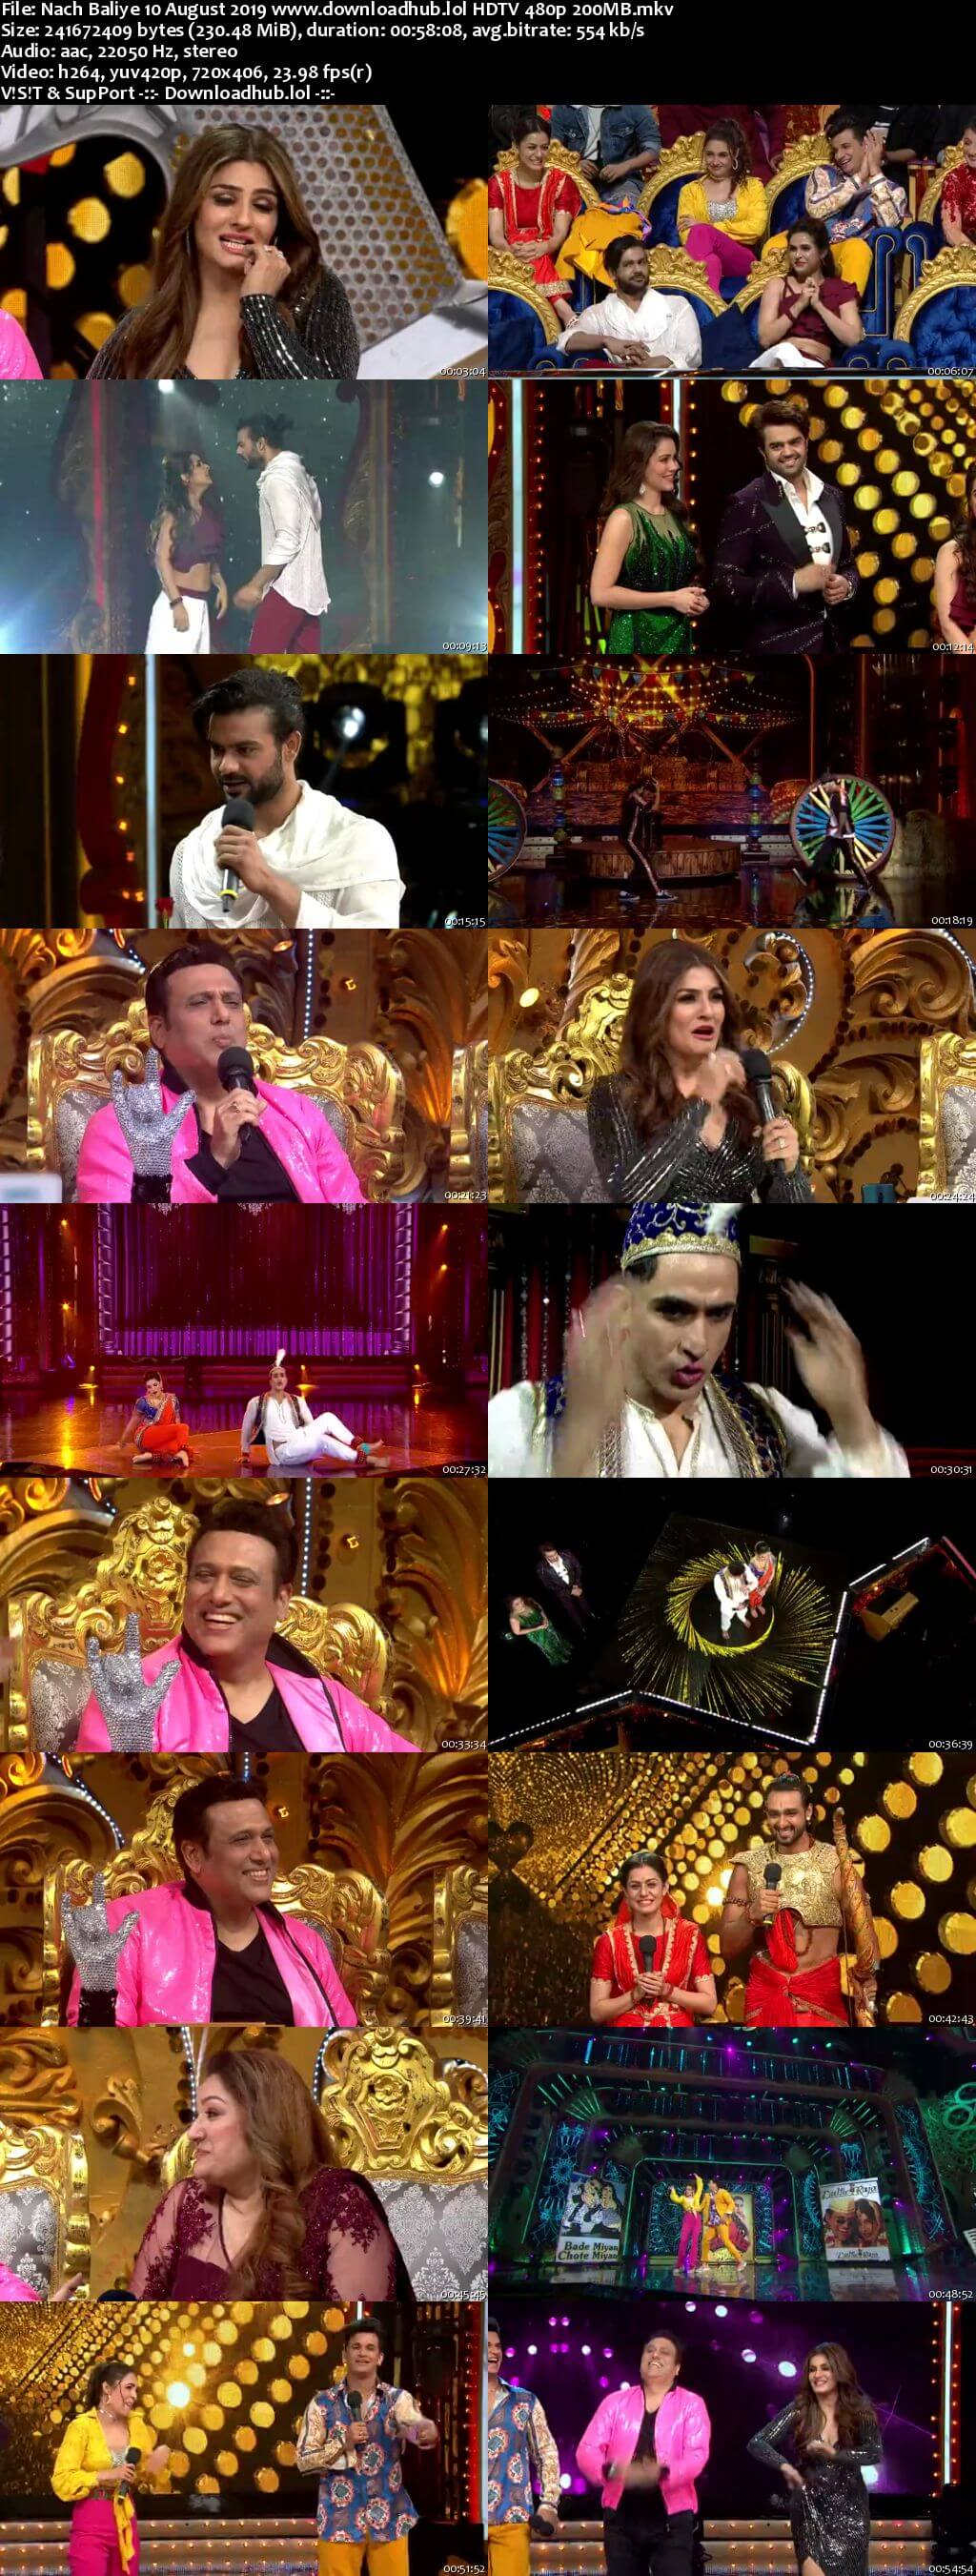 Nach Baliye 9 10 August 2019 Episode 08 HDTV 480p